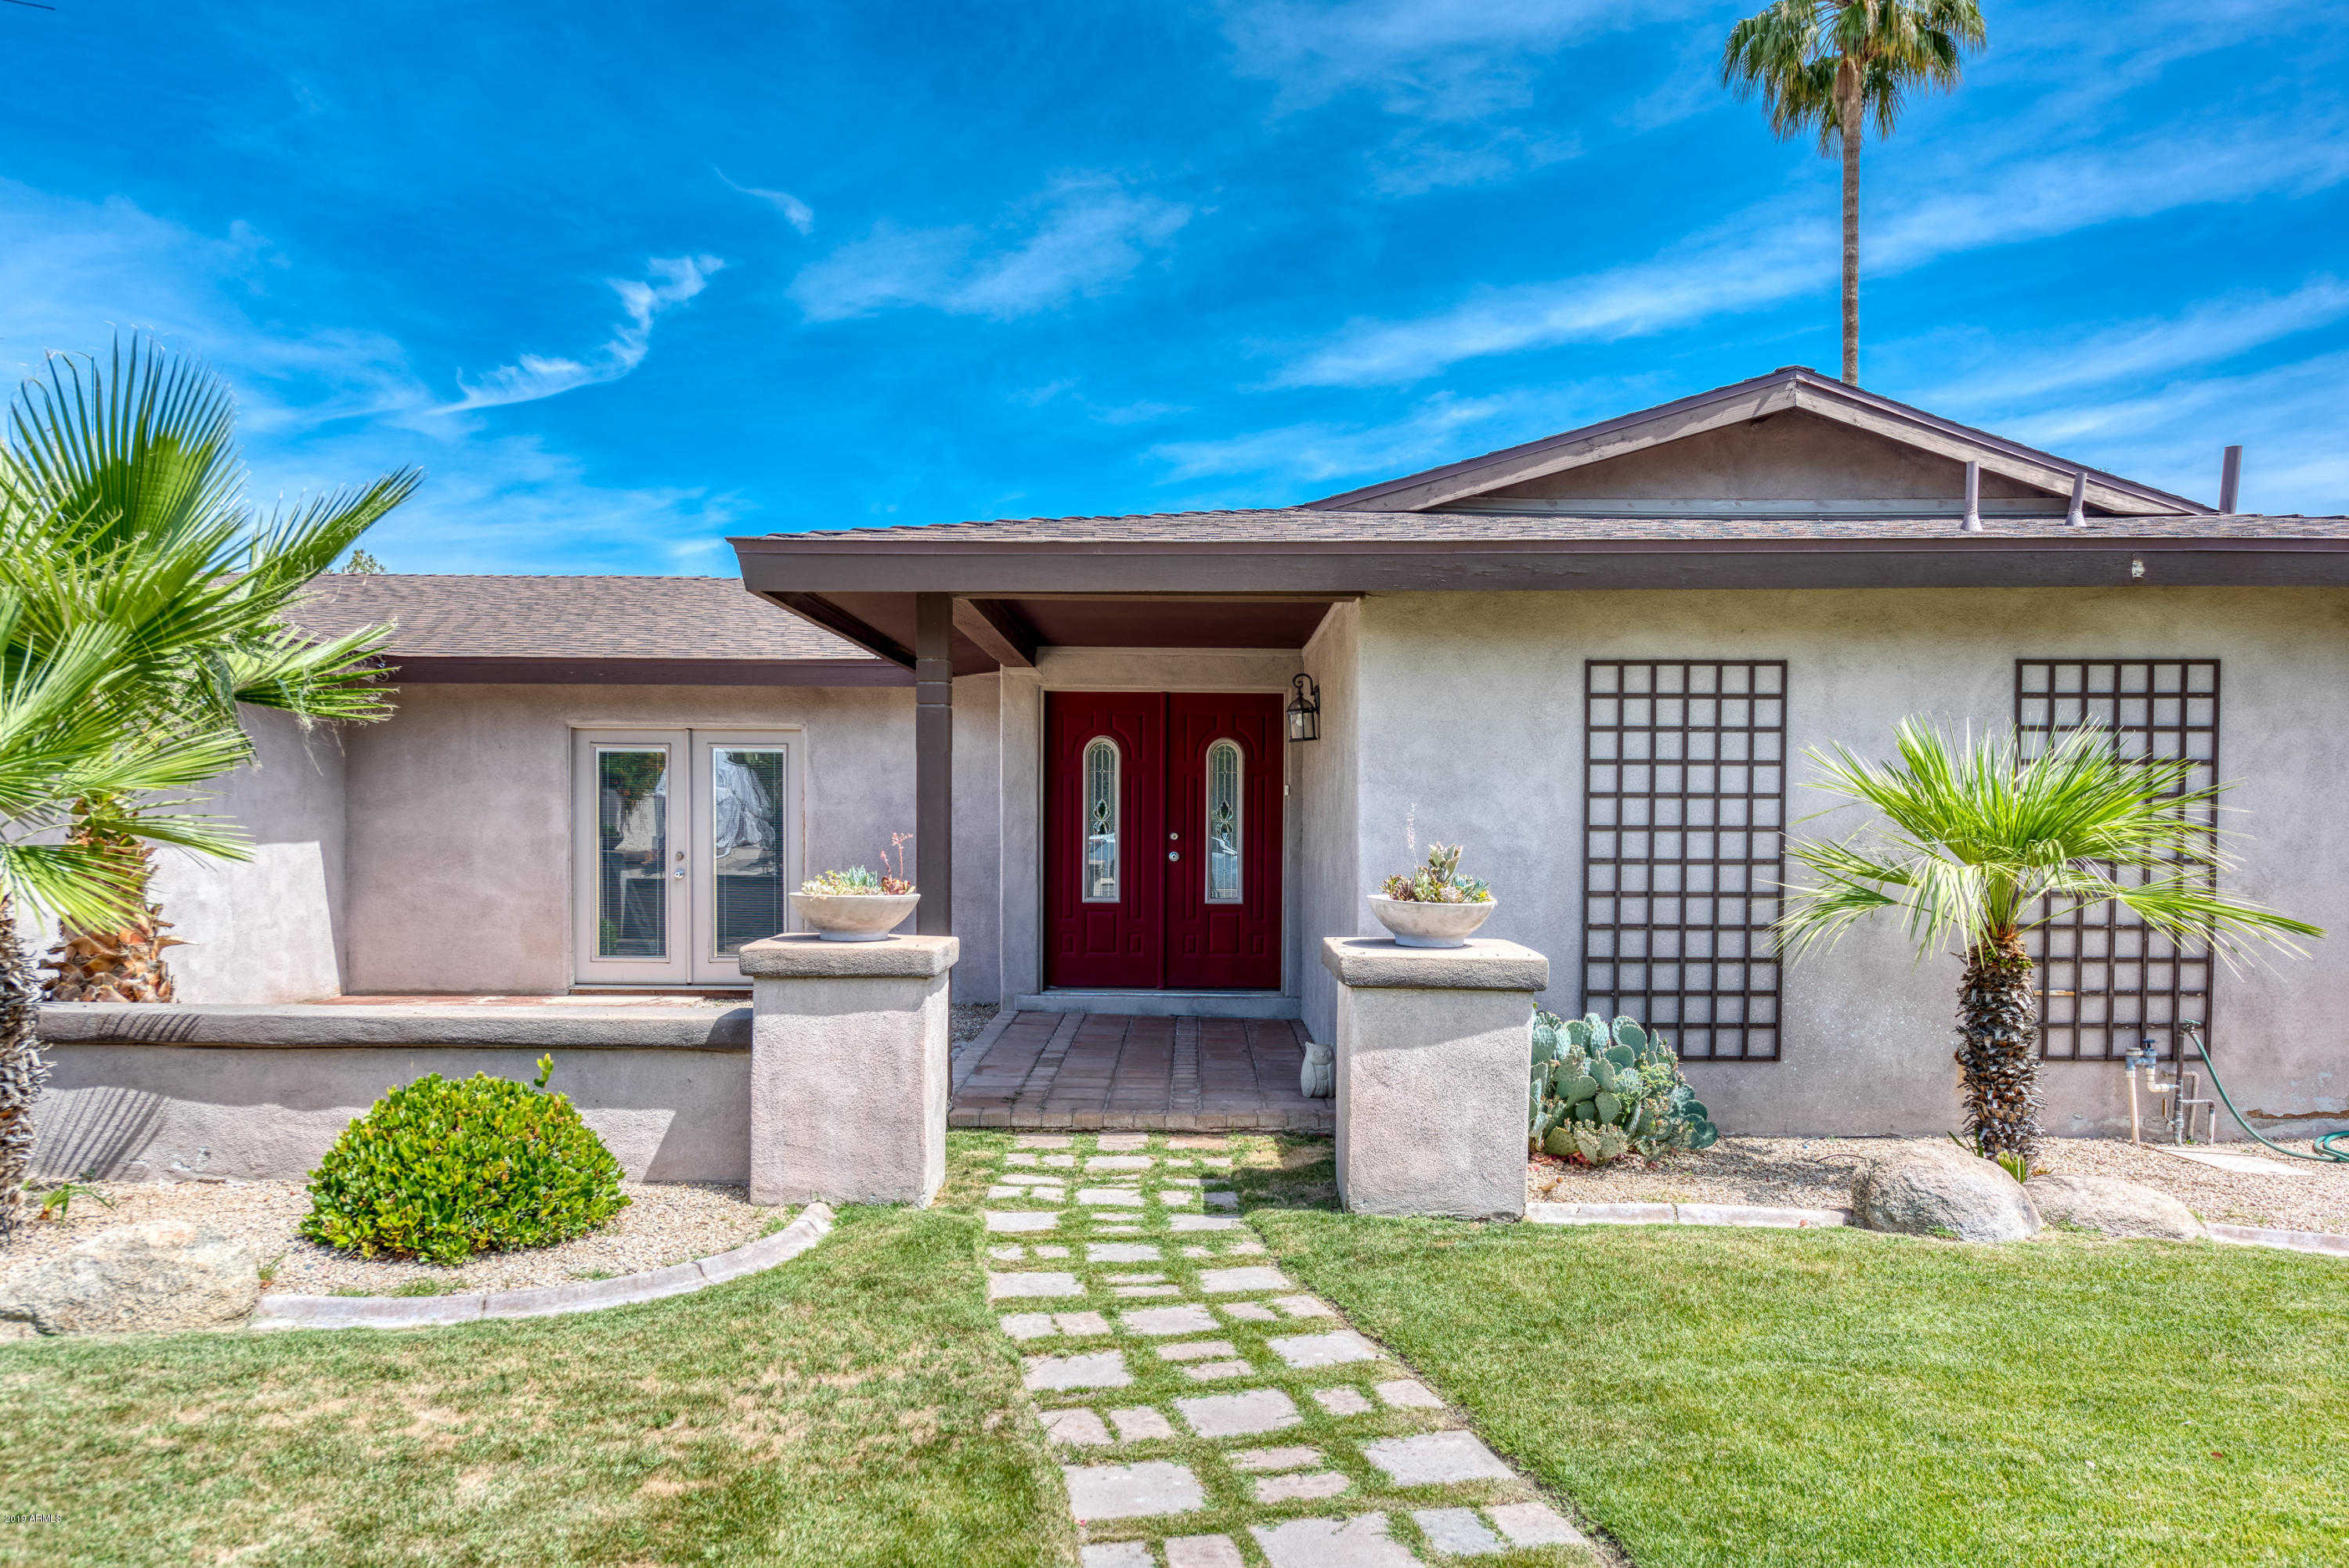 Greater Phoenix Area Homes for Sale and Metro Phoenix Homes